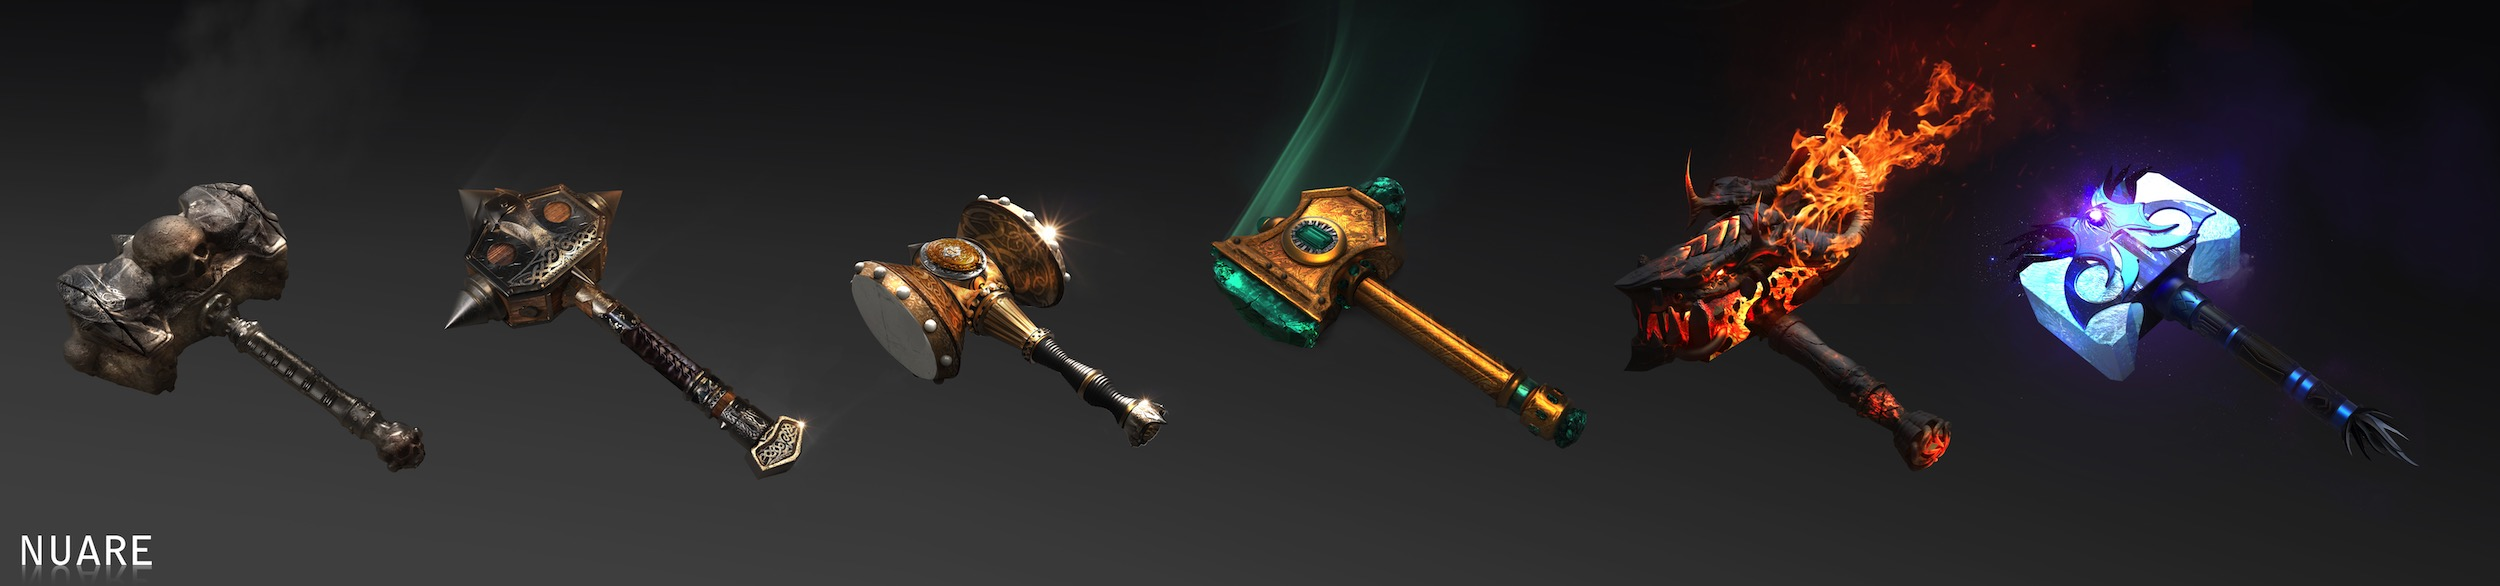 hammers_2500x586